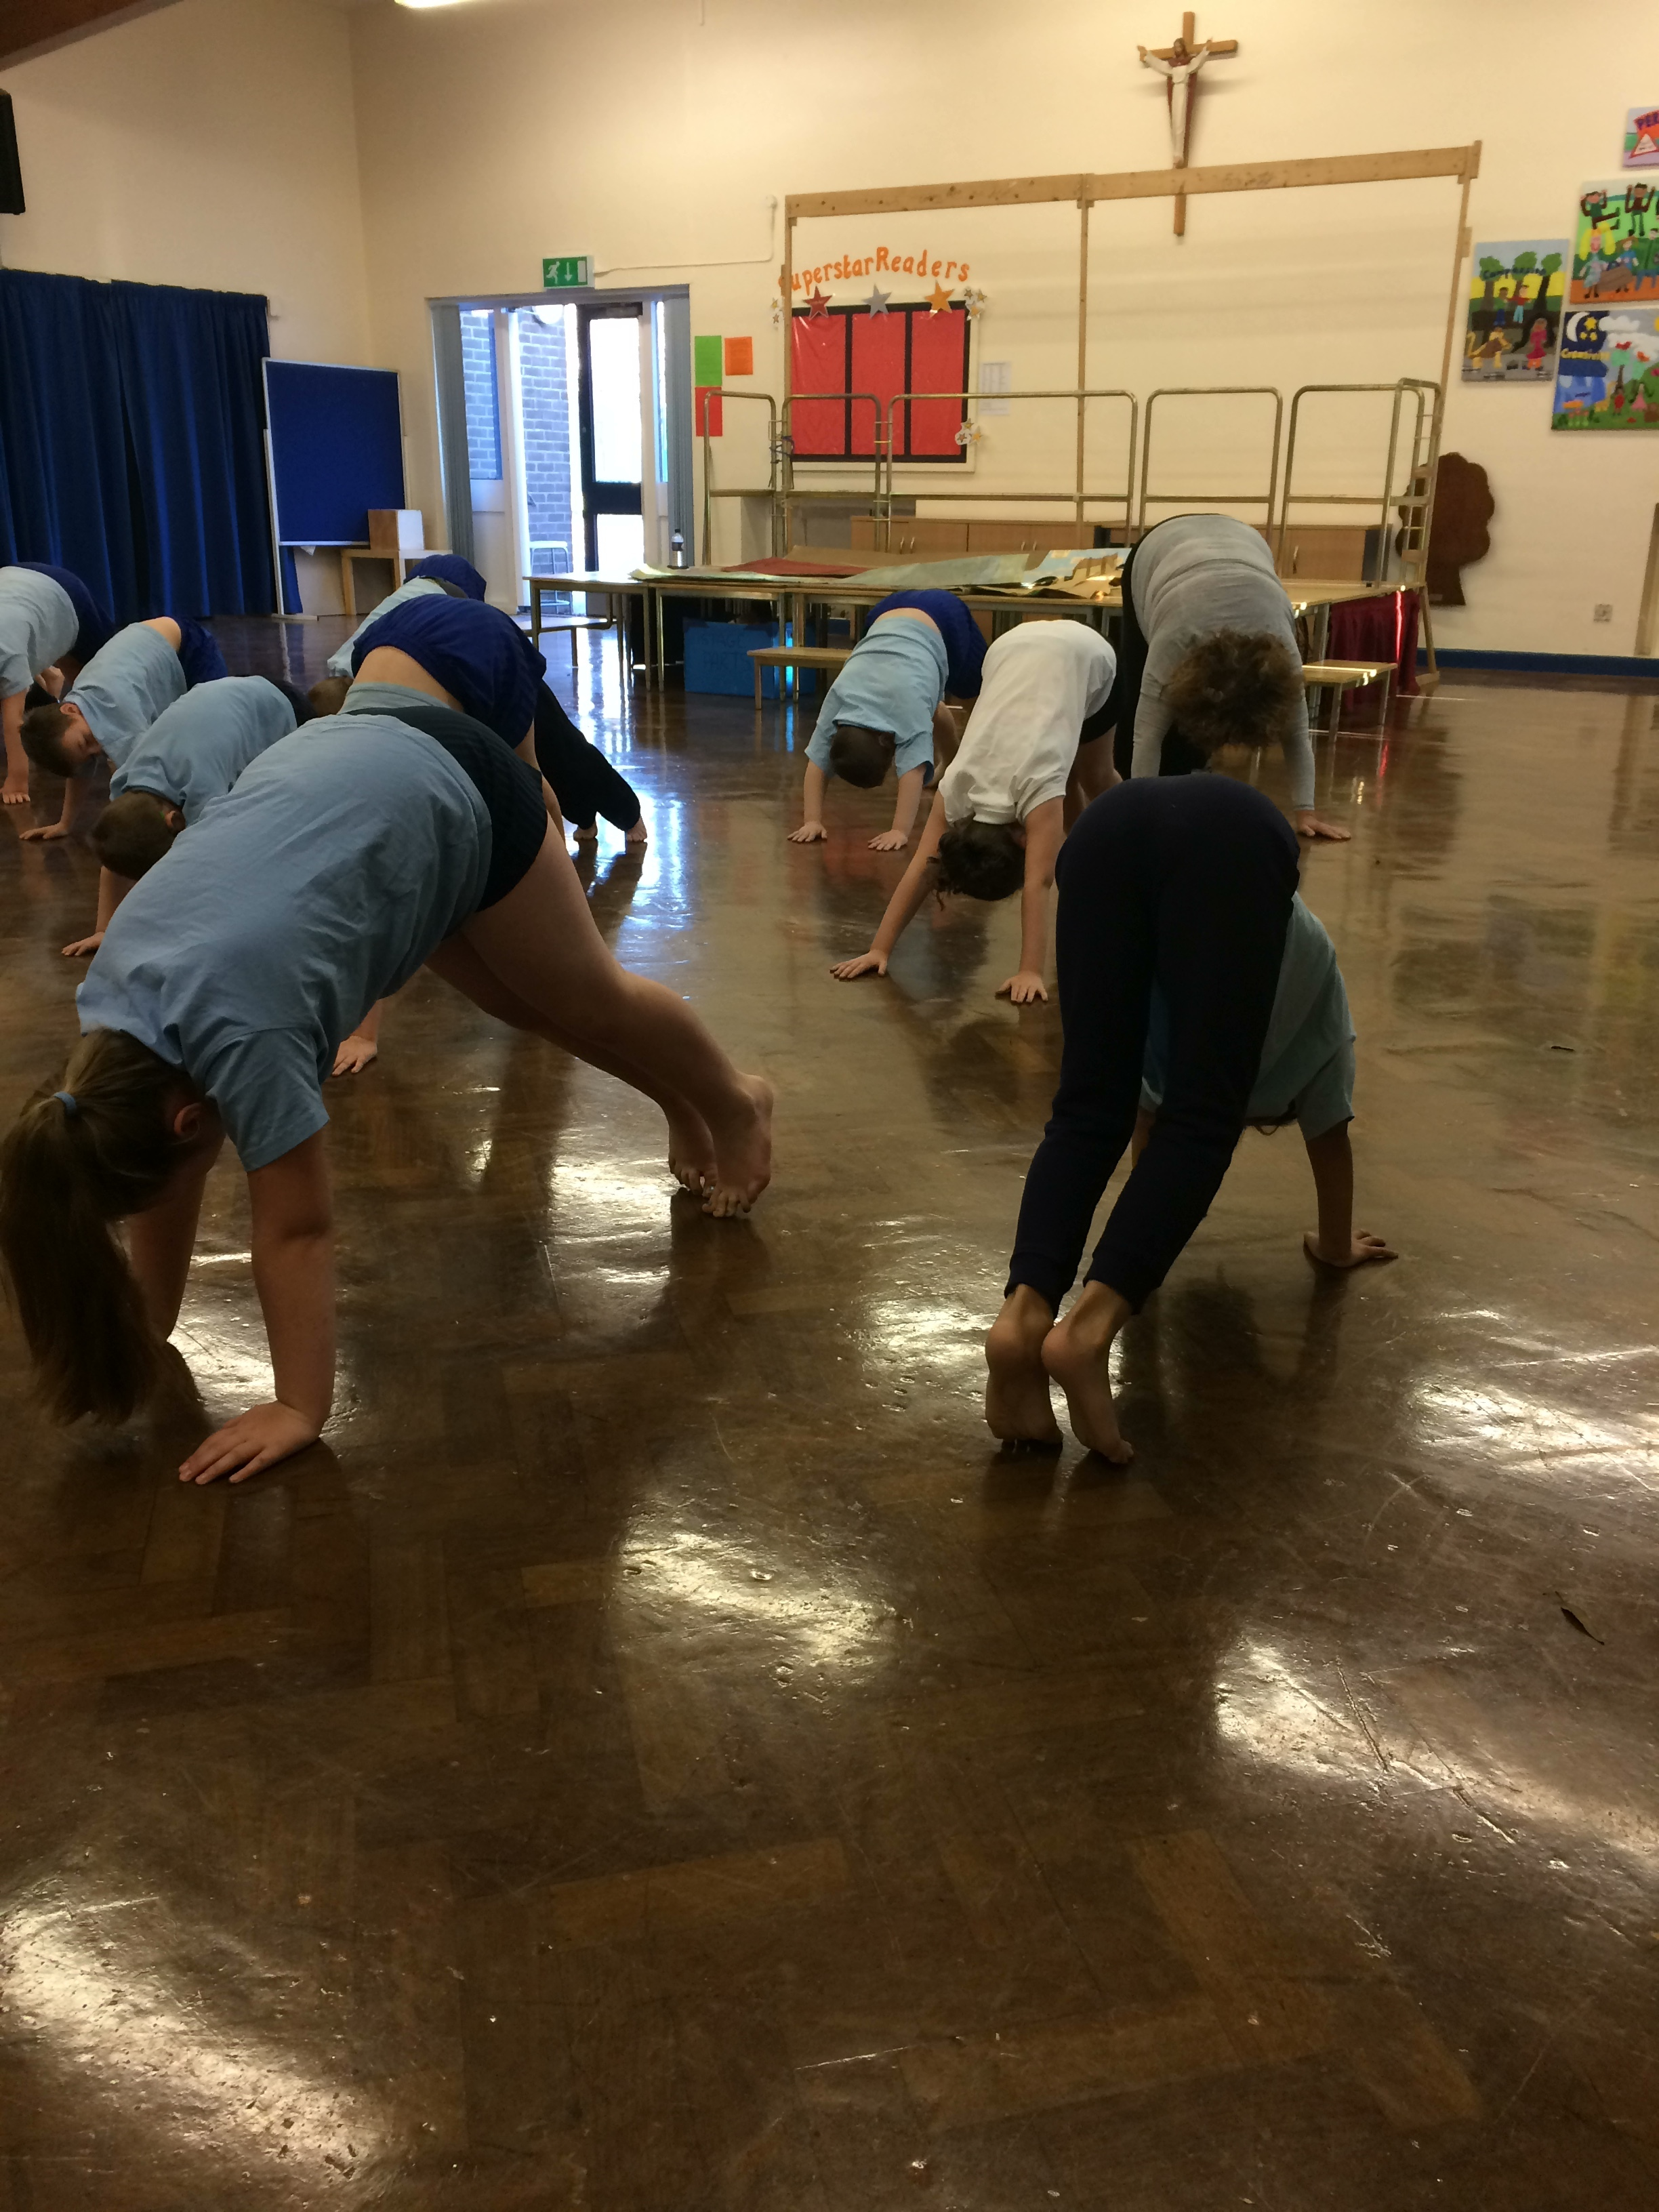 St Barnabus have booked in 3 sessions in which they are really enjoying developing their yoga and French